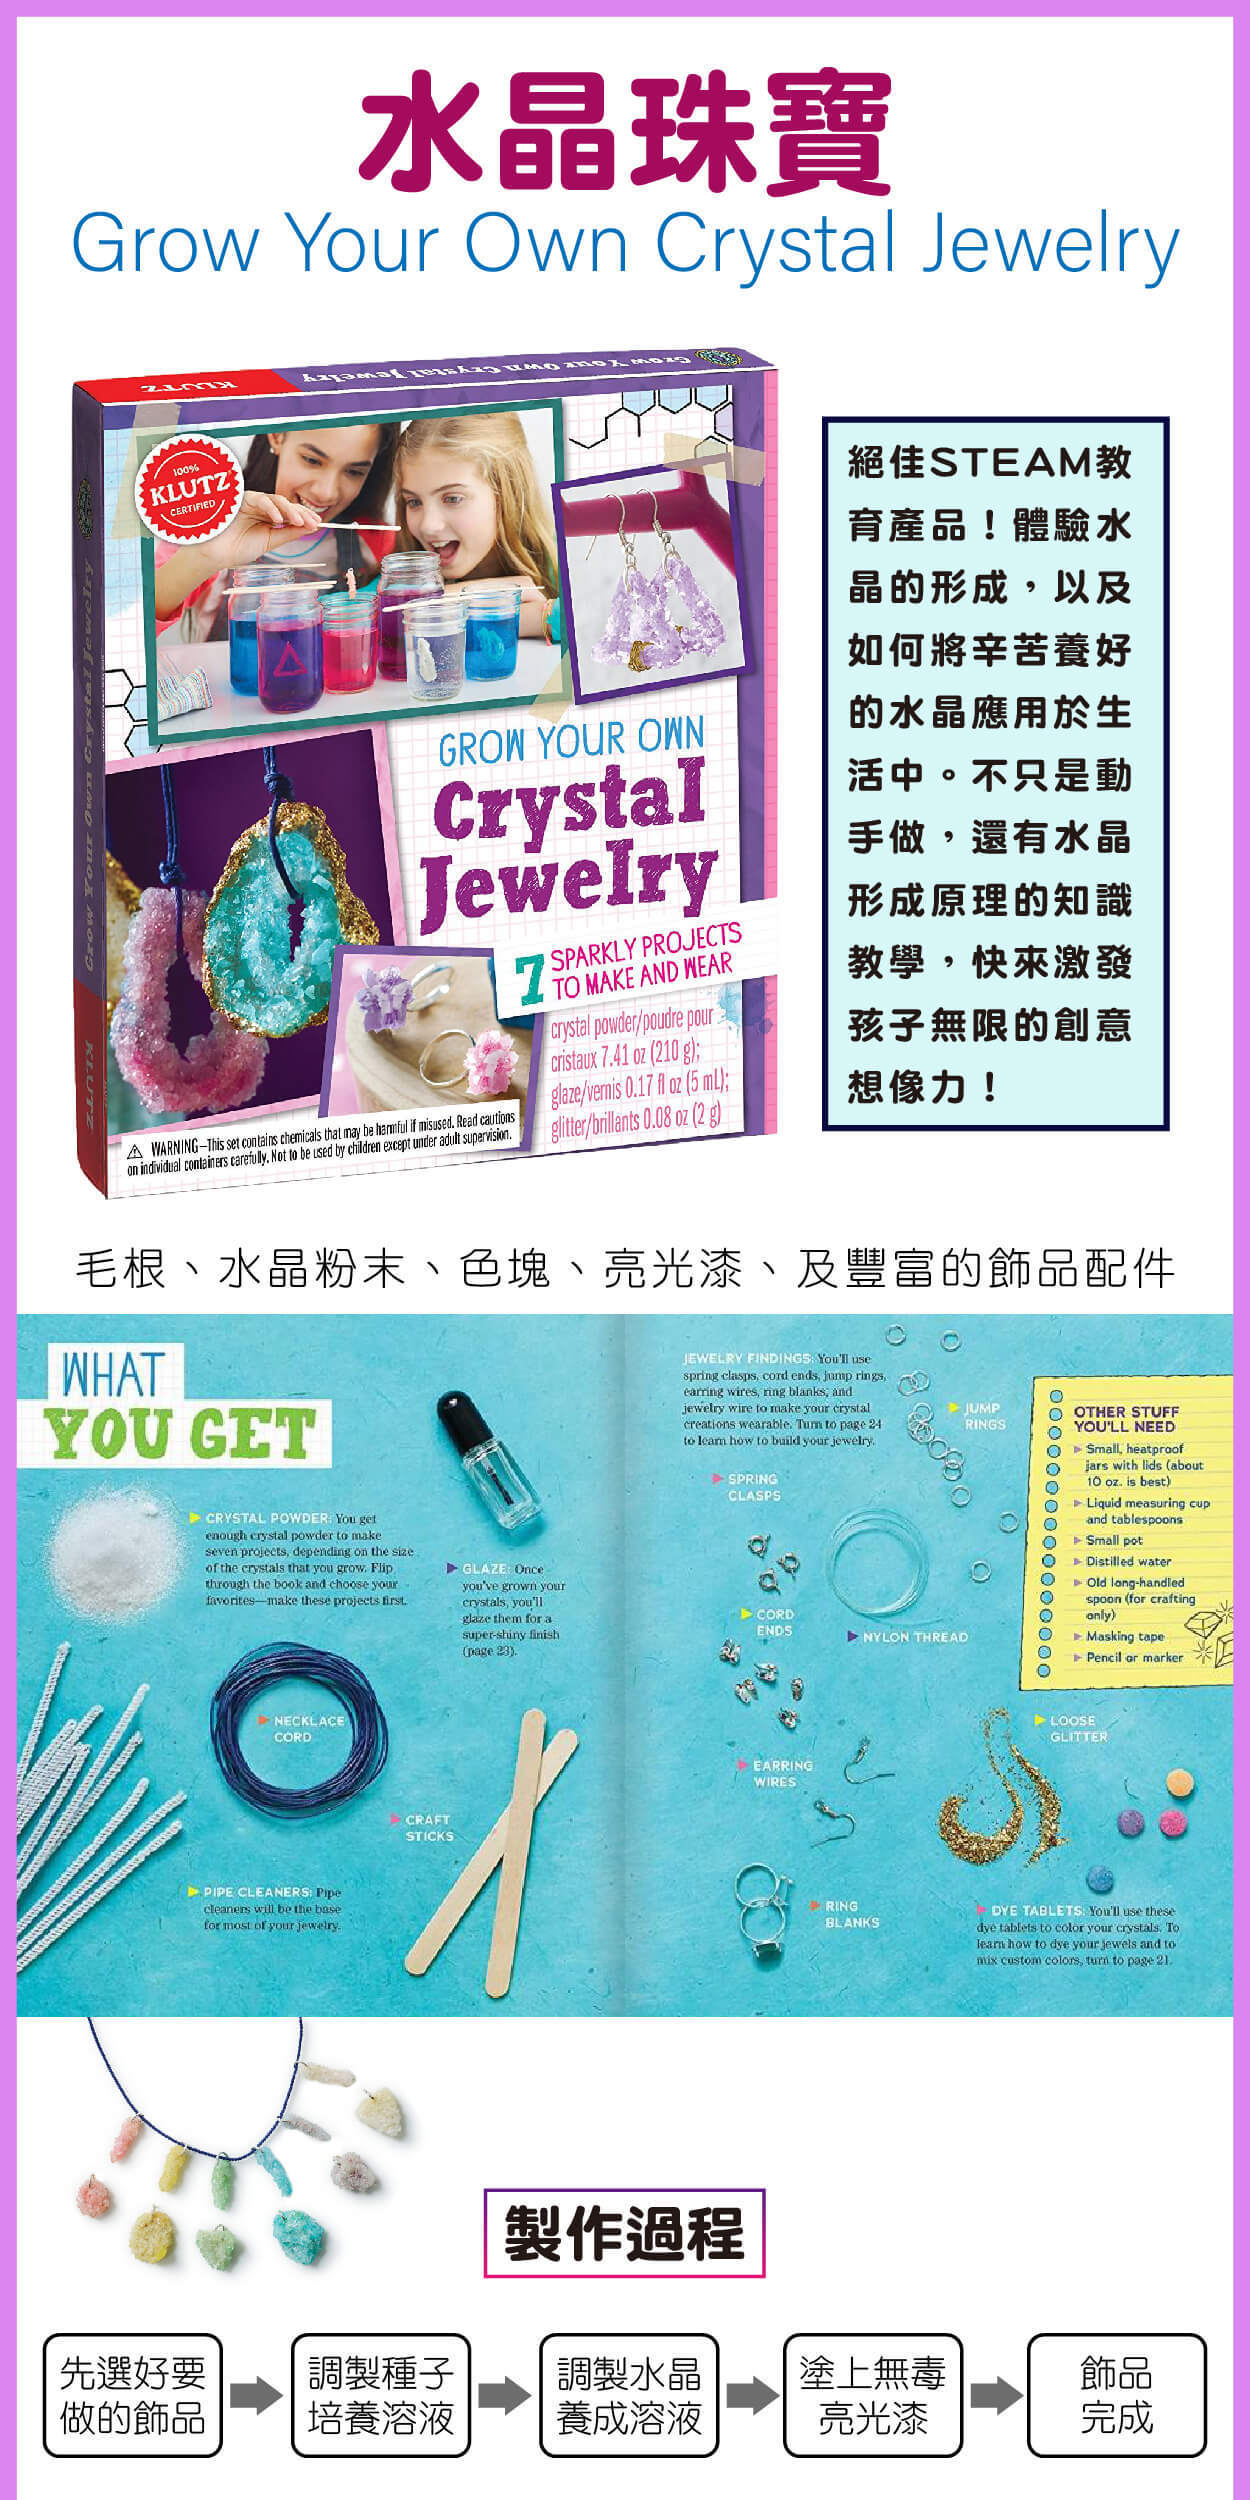 [KLUTZ] 水晶珠寶 Grow Your Own Crystal Jewelry | LELE-KID